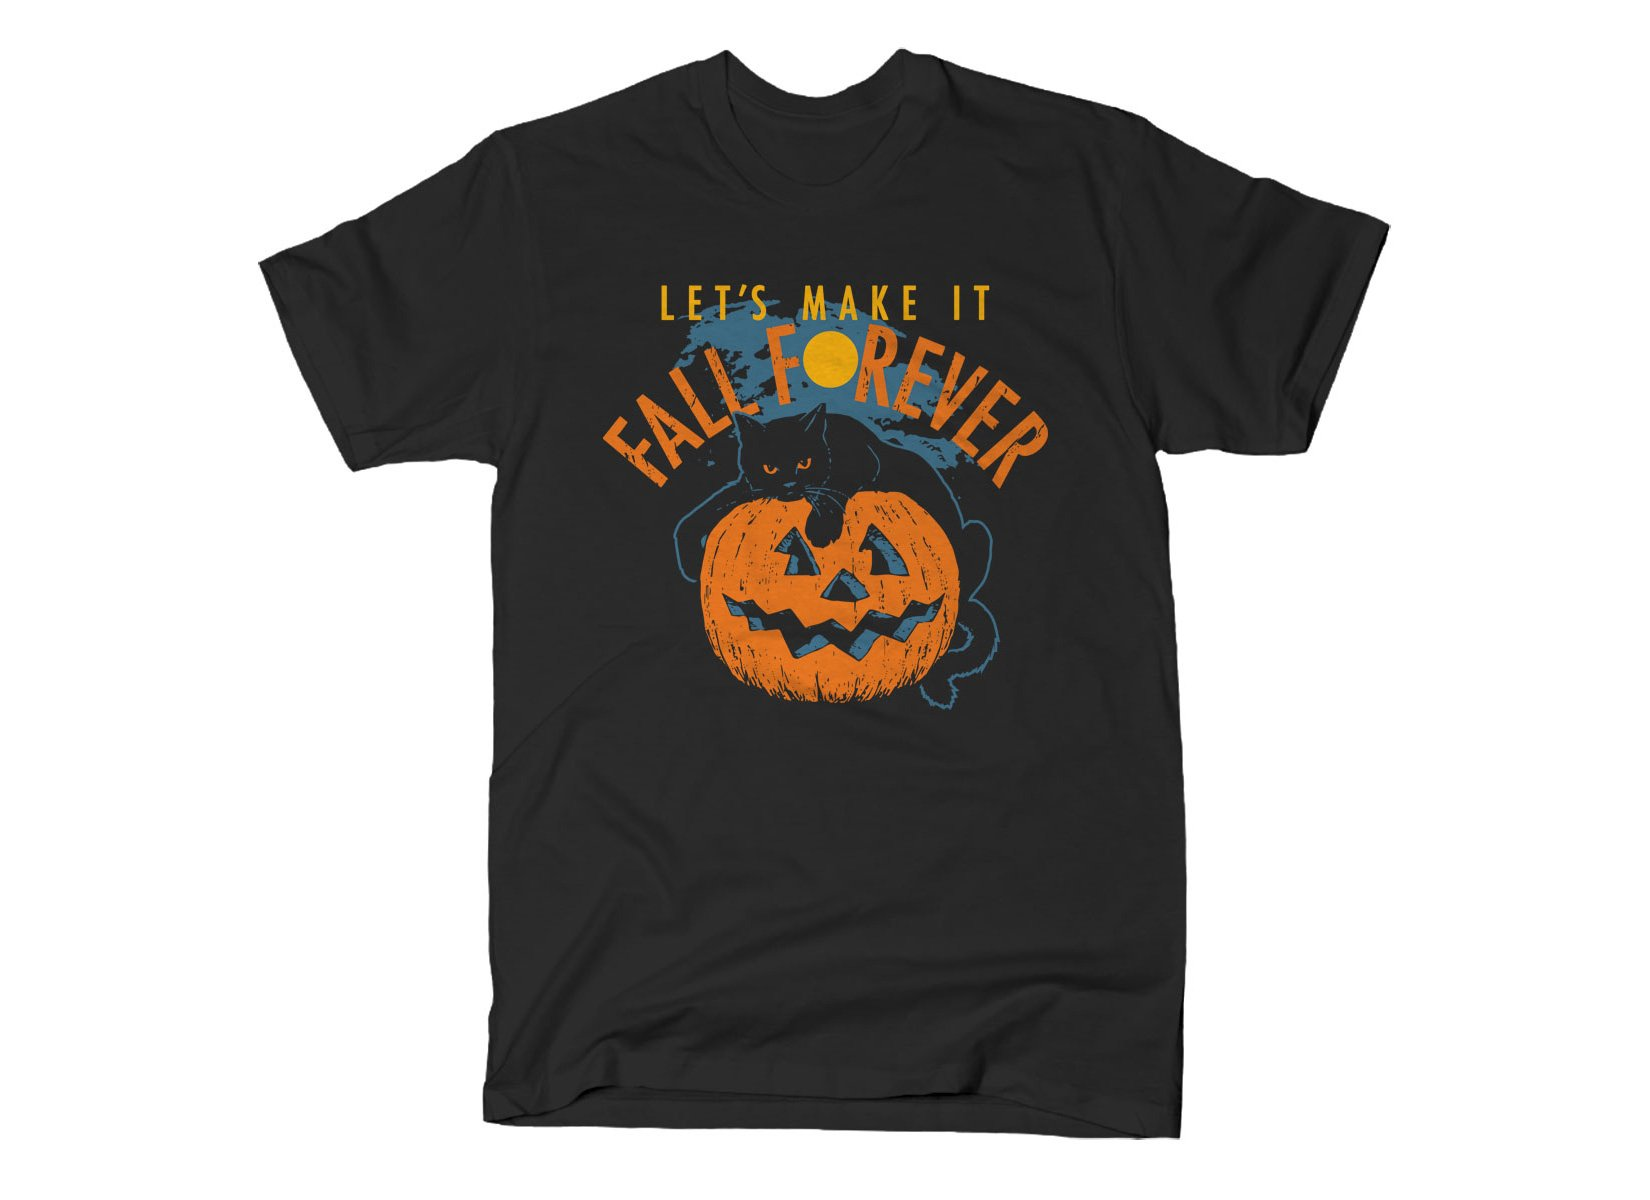 Fall Forever on Mens T-Shirt